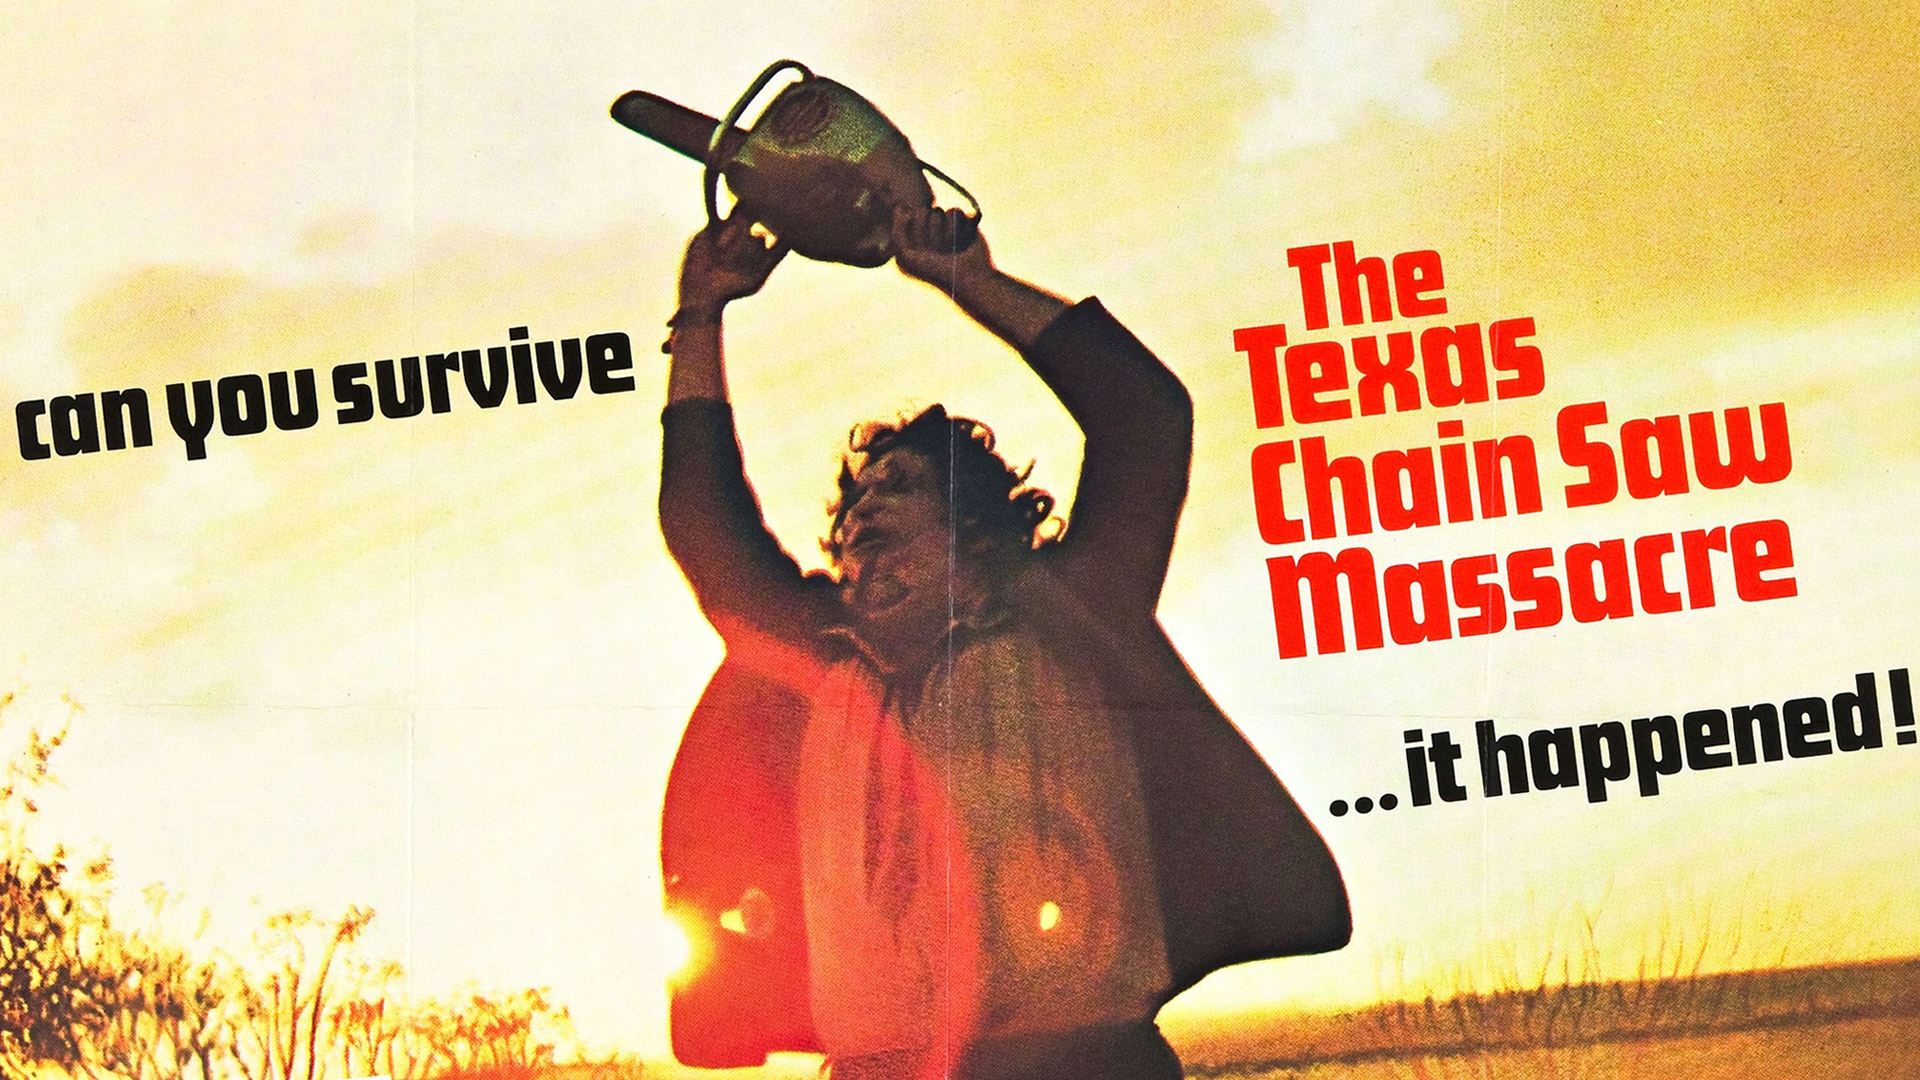 the texas chain saw massacre (1974) full hd wallpaper and background